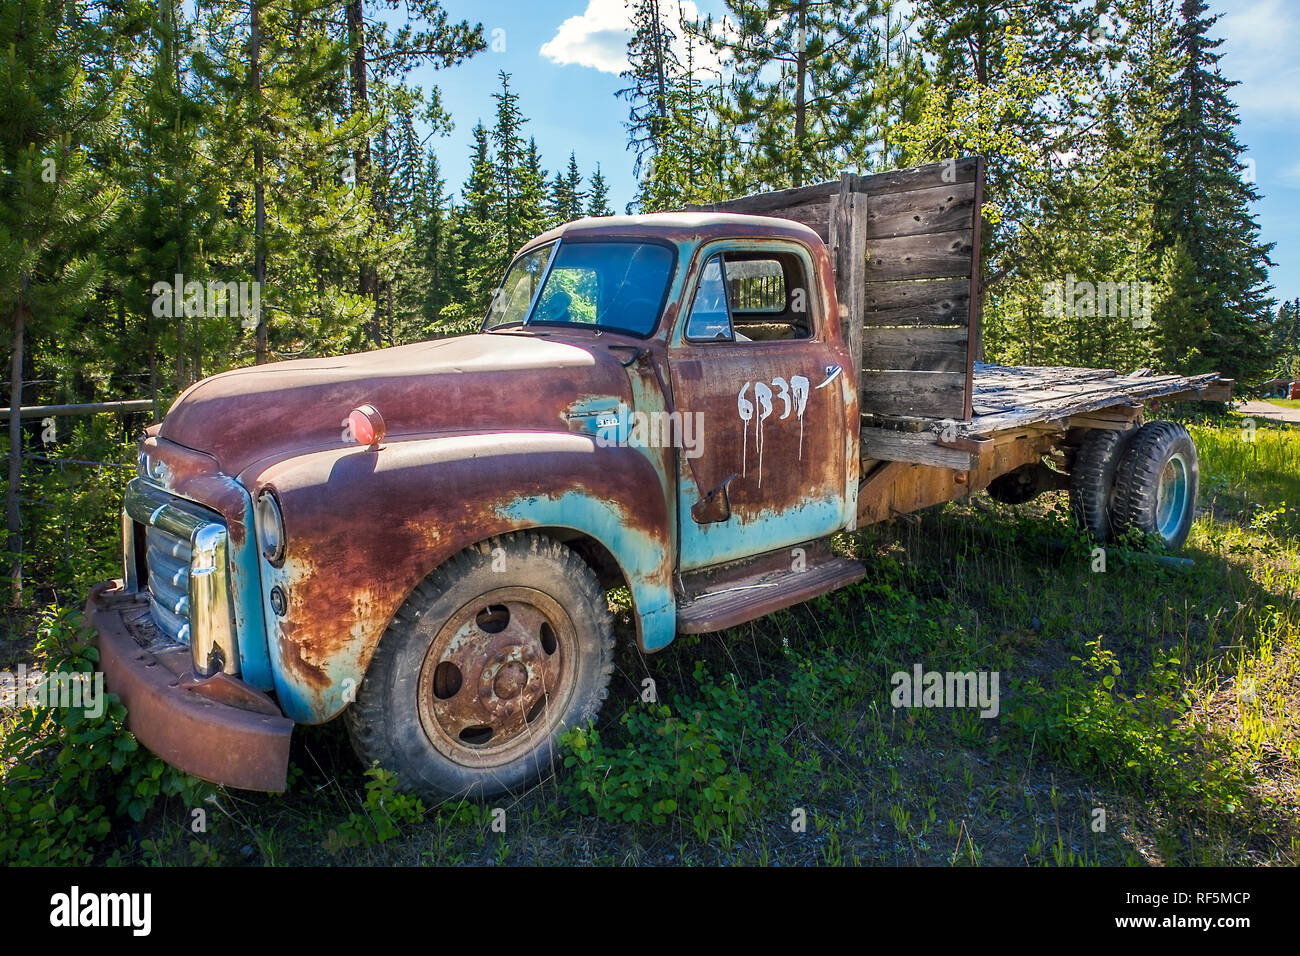 Fort Fraser, British Columbia, Canada. June 17, 2018. Old rusted car in the forest - Stock Image